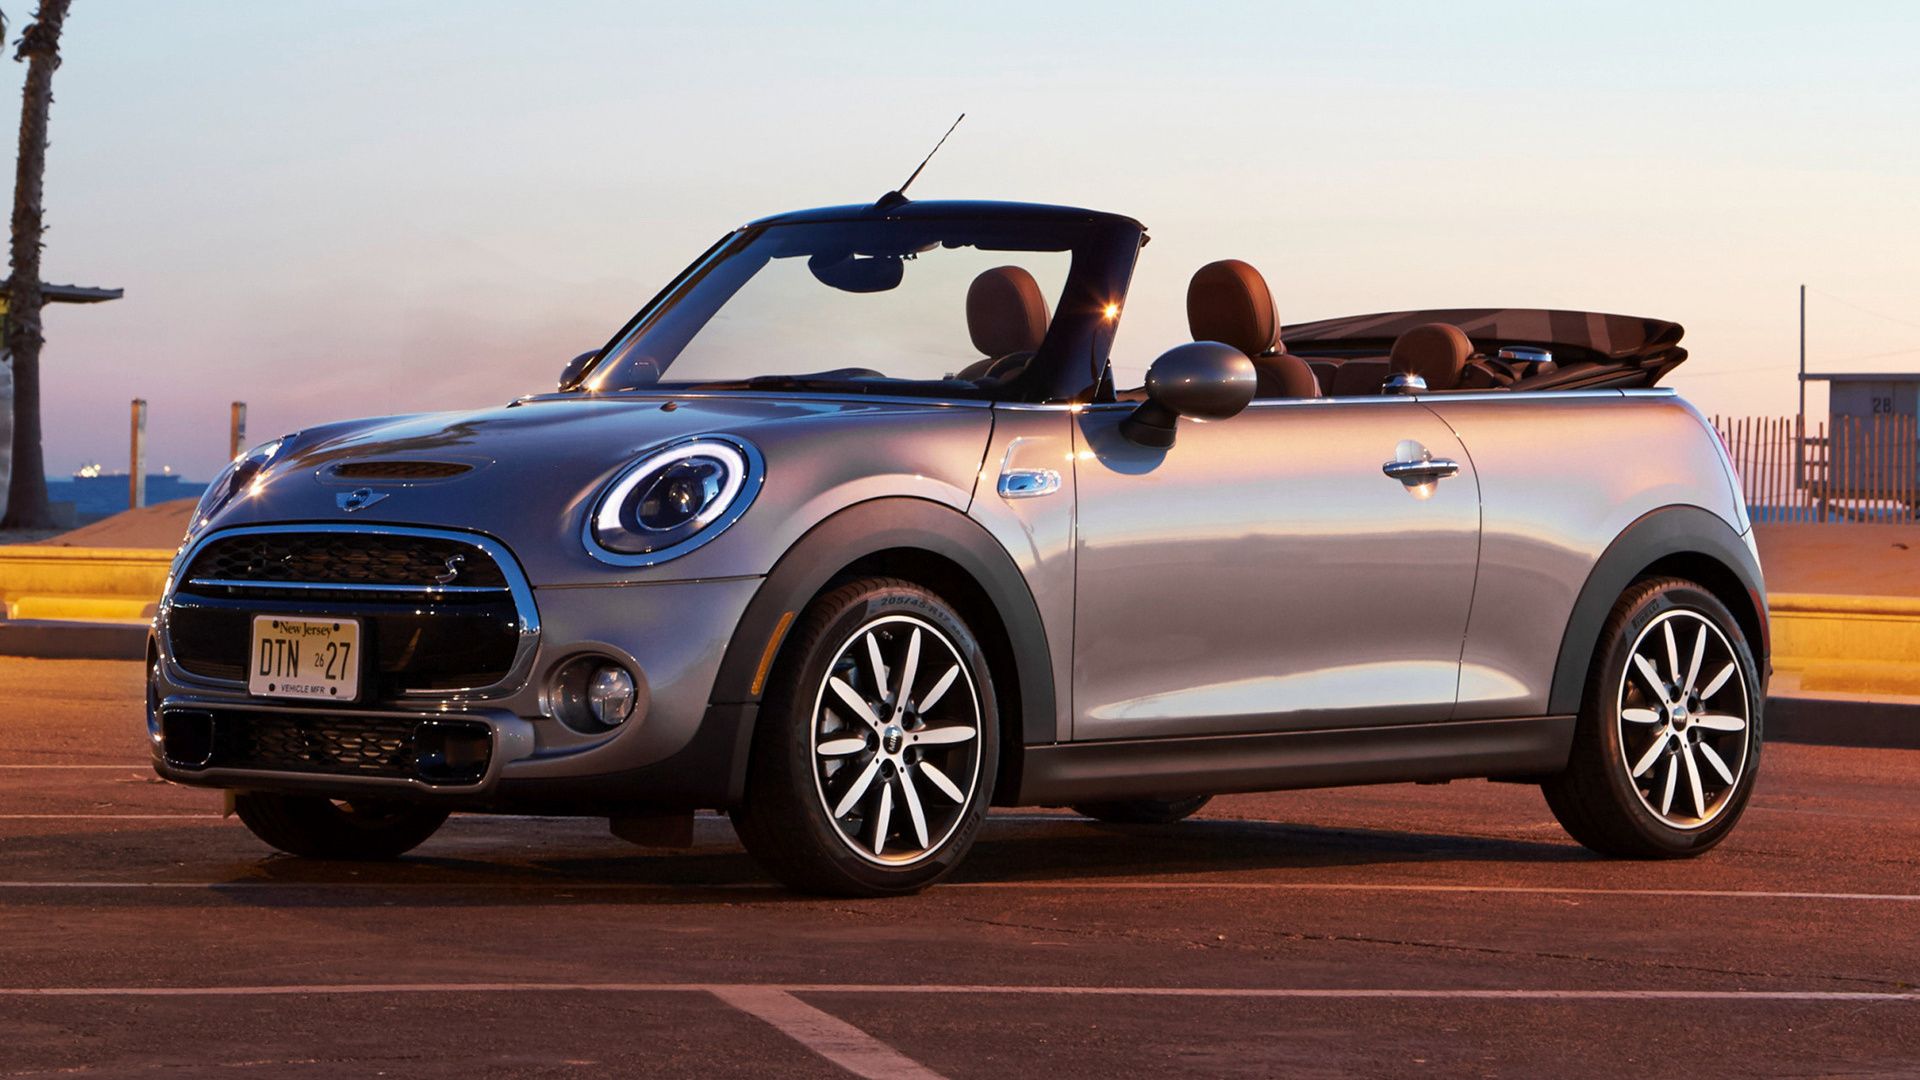 Mini Cooper S Convertible 2016 US Wallpapers and HD 1920x1080